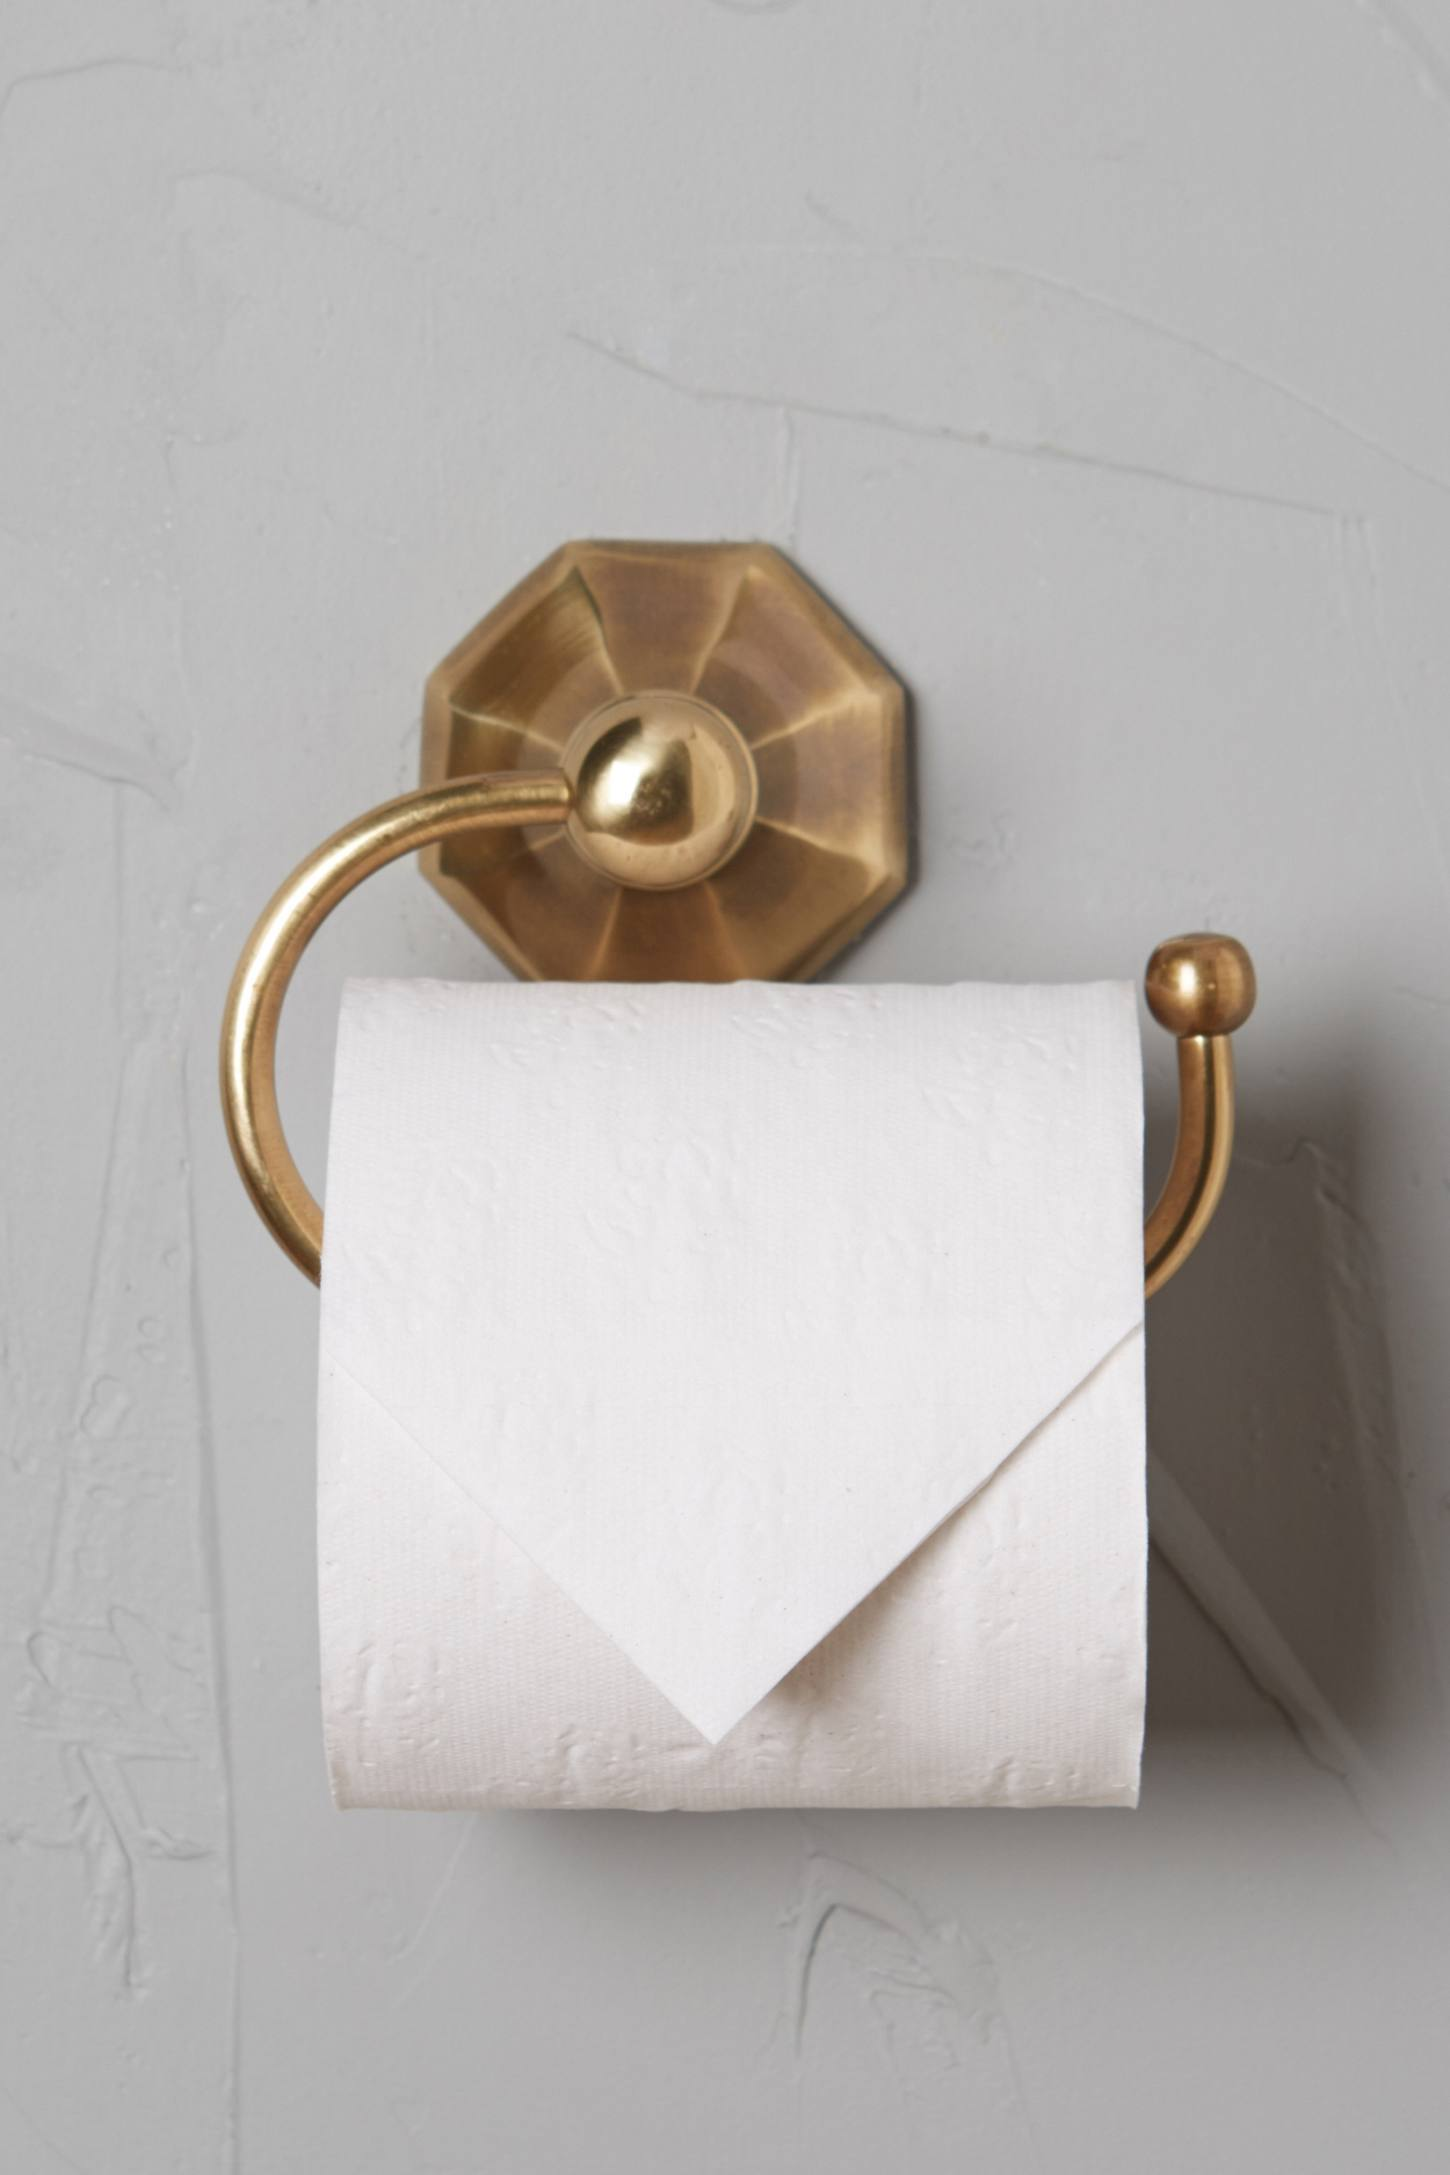 Slide View: 1: Brass Circlet Toilet Paper Holder